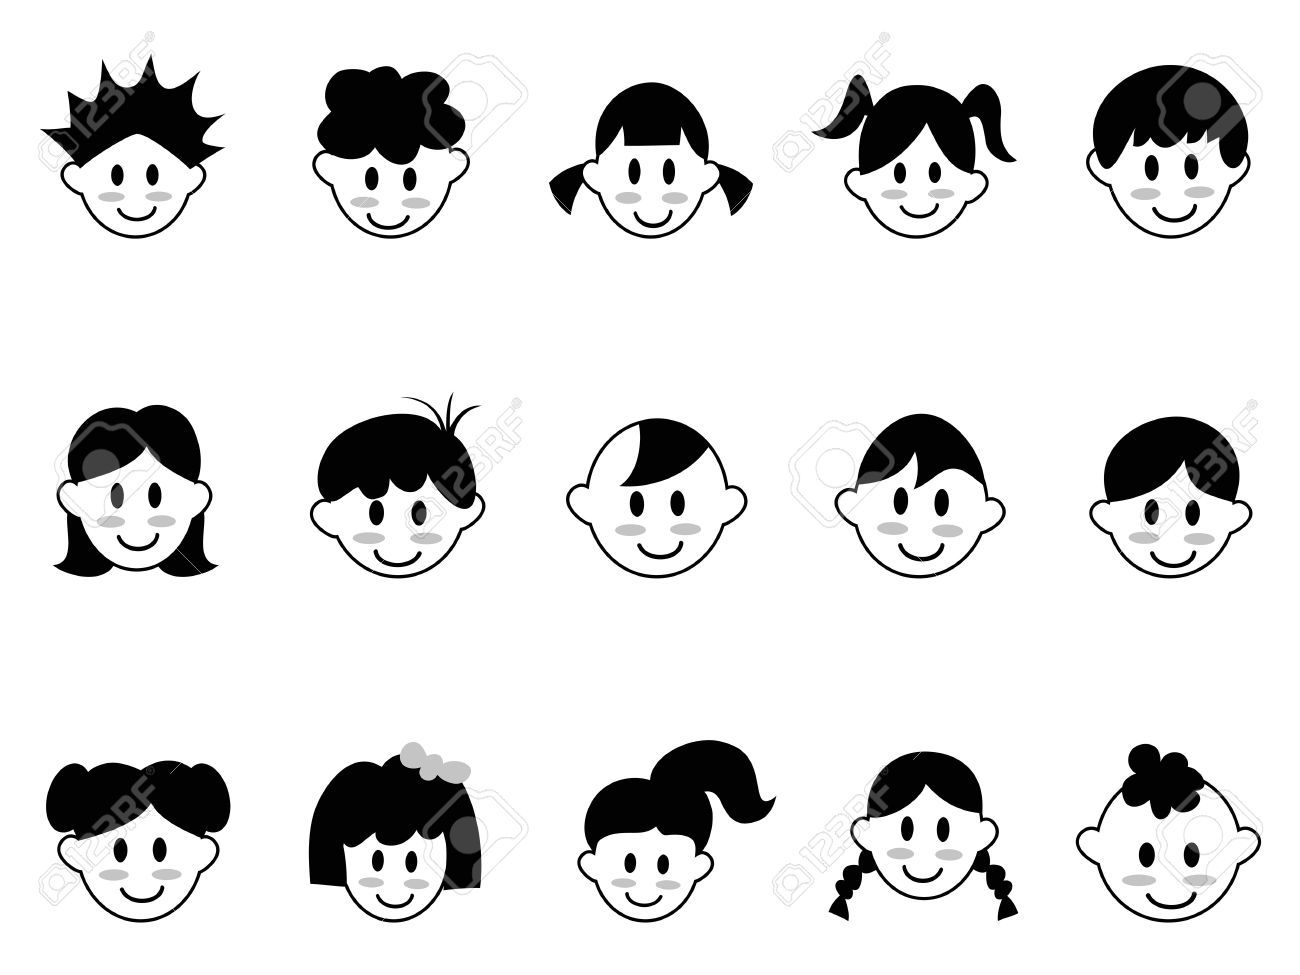 Child face clipart black and white 5 » Clipart Portal.